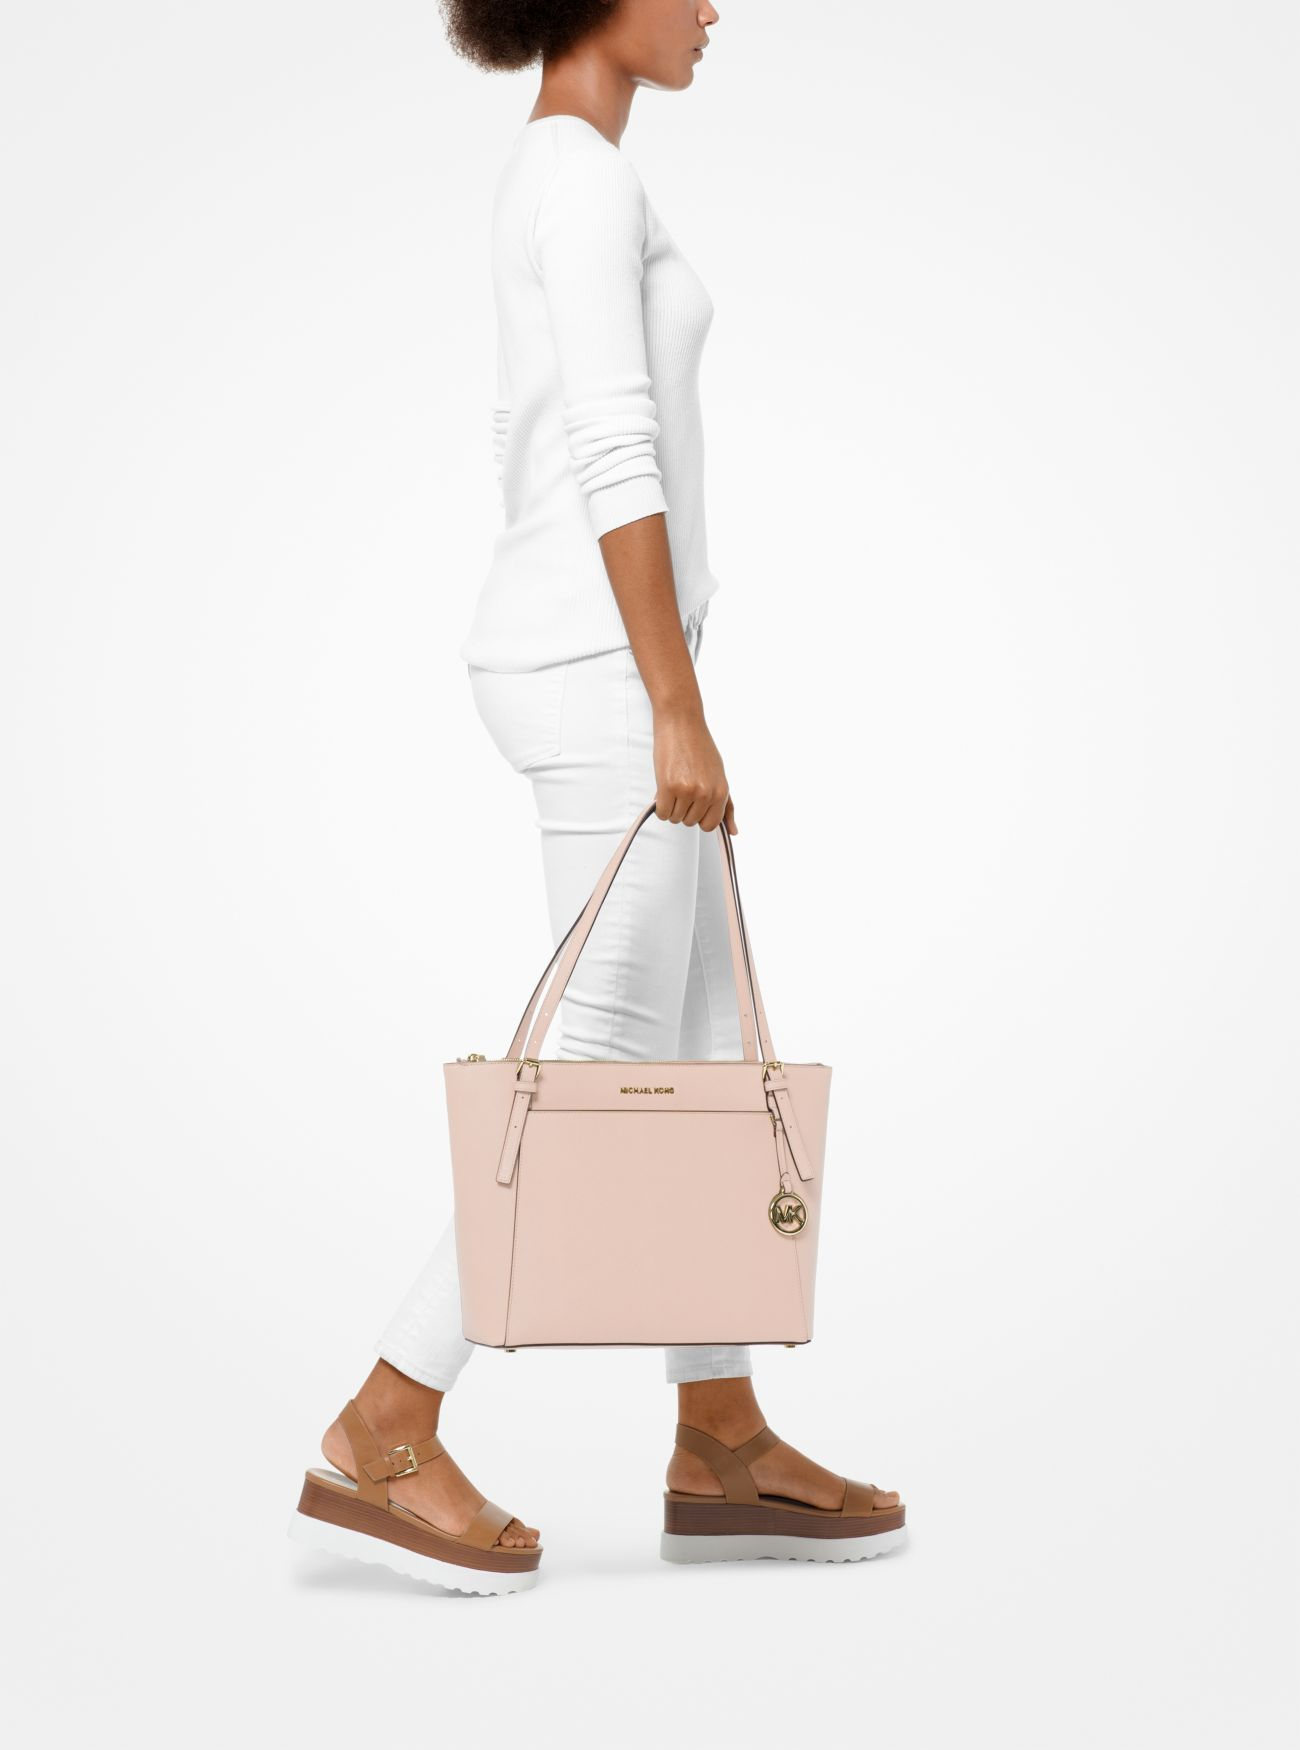 Michael Kors Voyager Large Saffiano Leather Top-Zip Tote Bag, Soft Pink